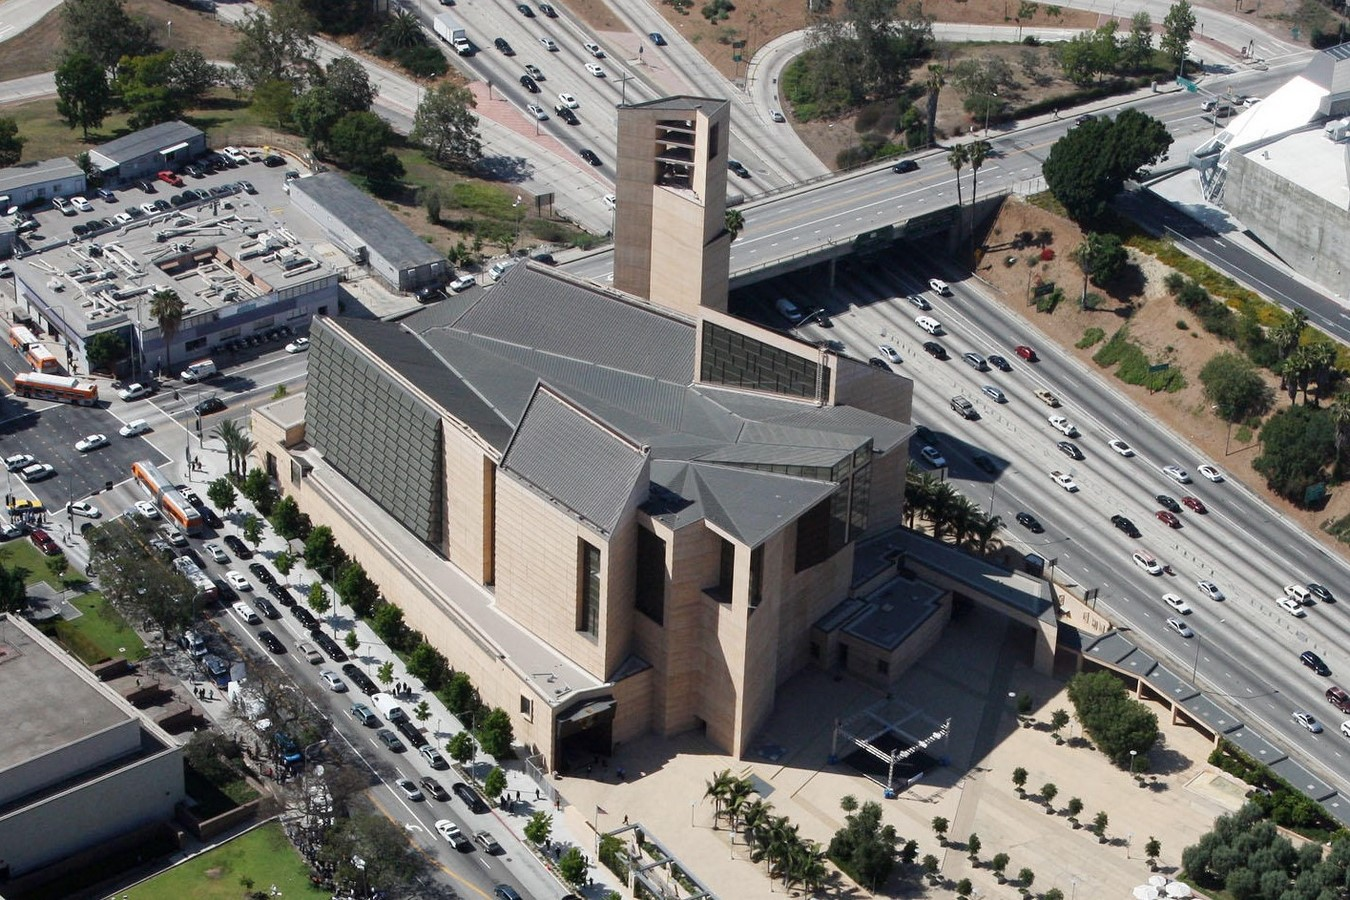 Cathedral of Our Lady of the Angels by Rafael Moneo: A series of acute and obtuse angles - Sheet10